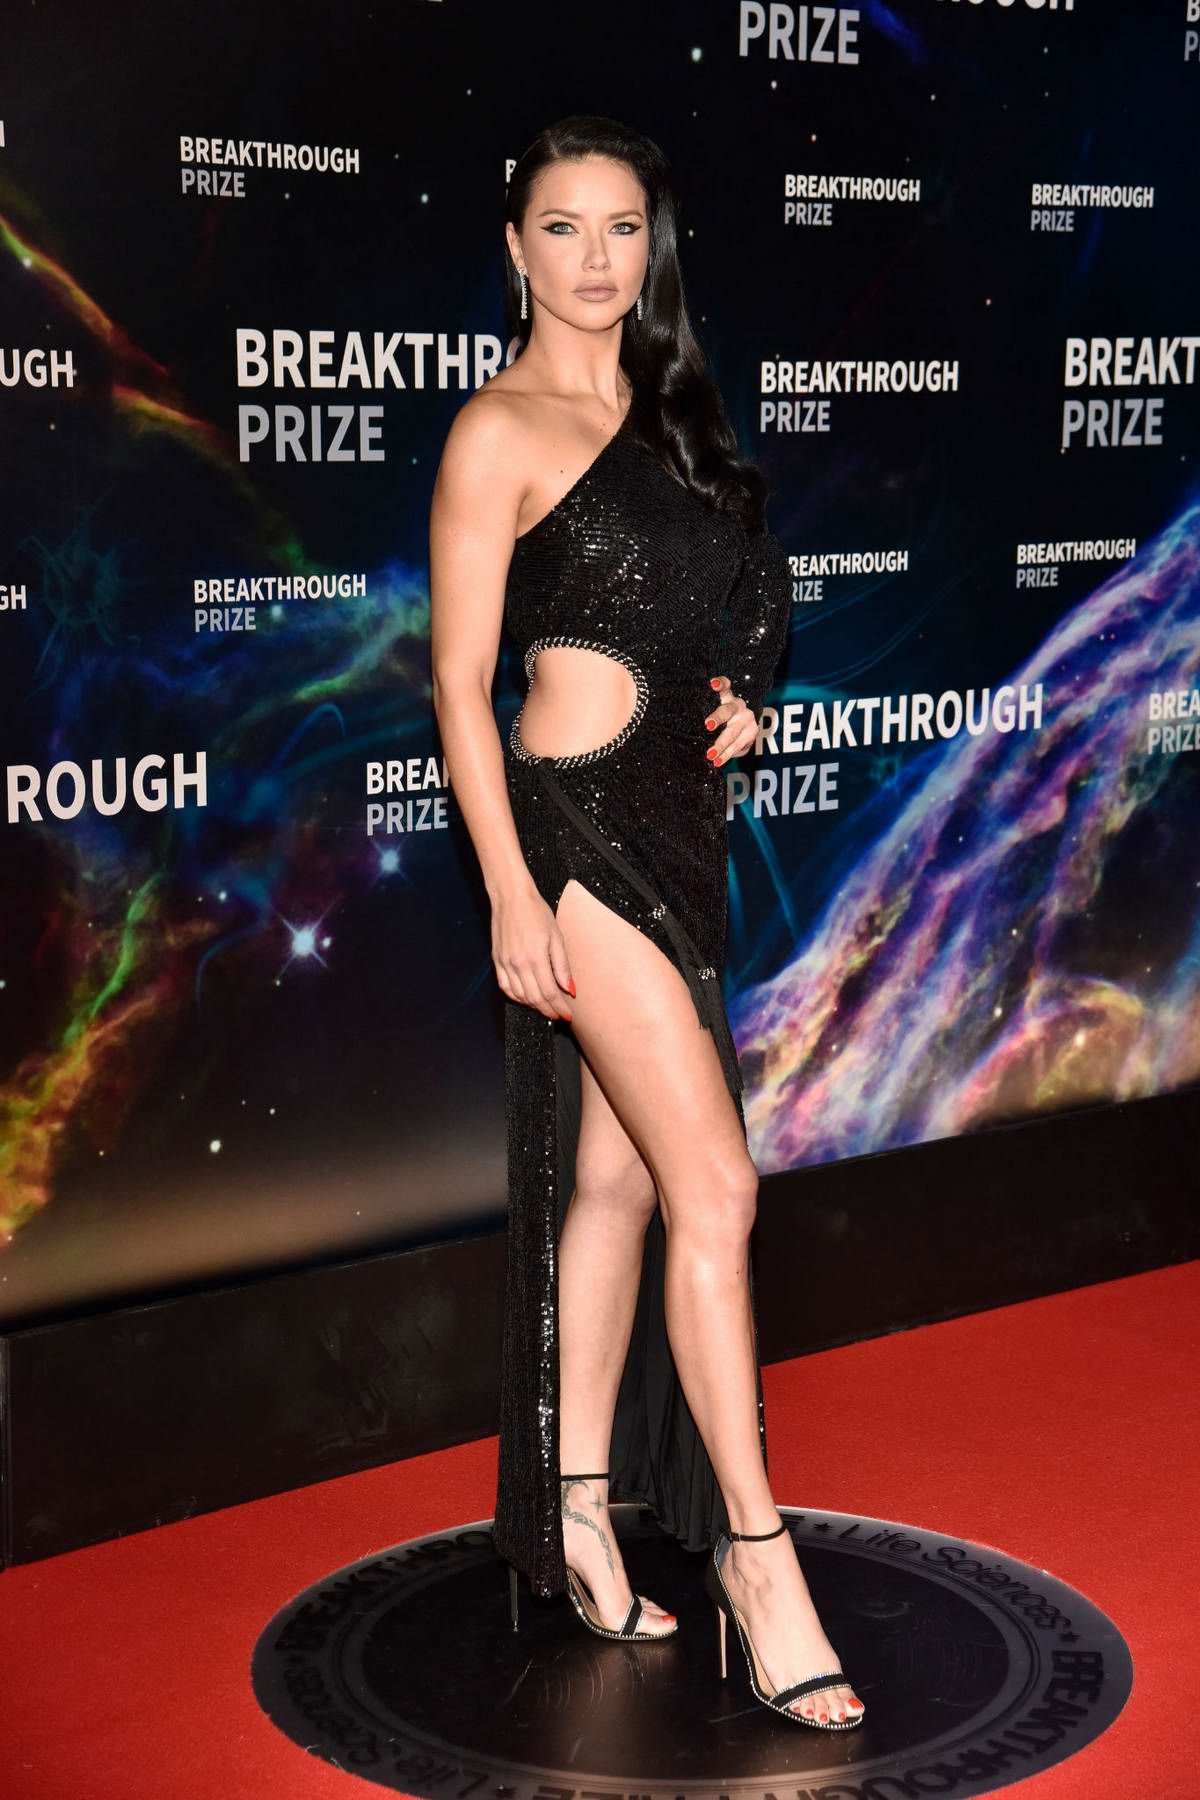 Adriana Lima attends the 8th Annual Breakthrough Prize Ceremony in Mountain View, California